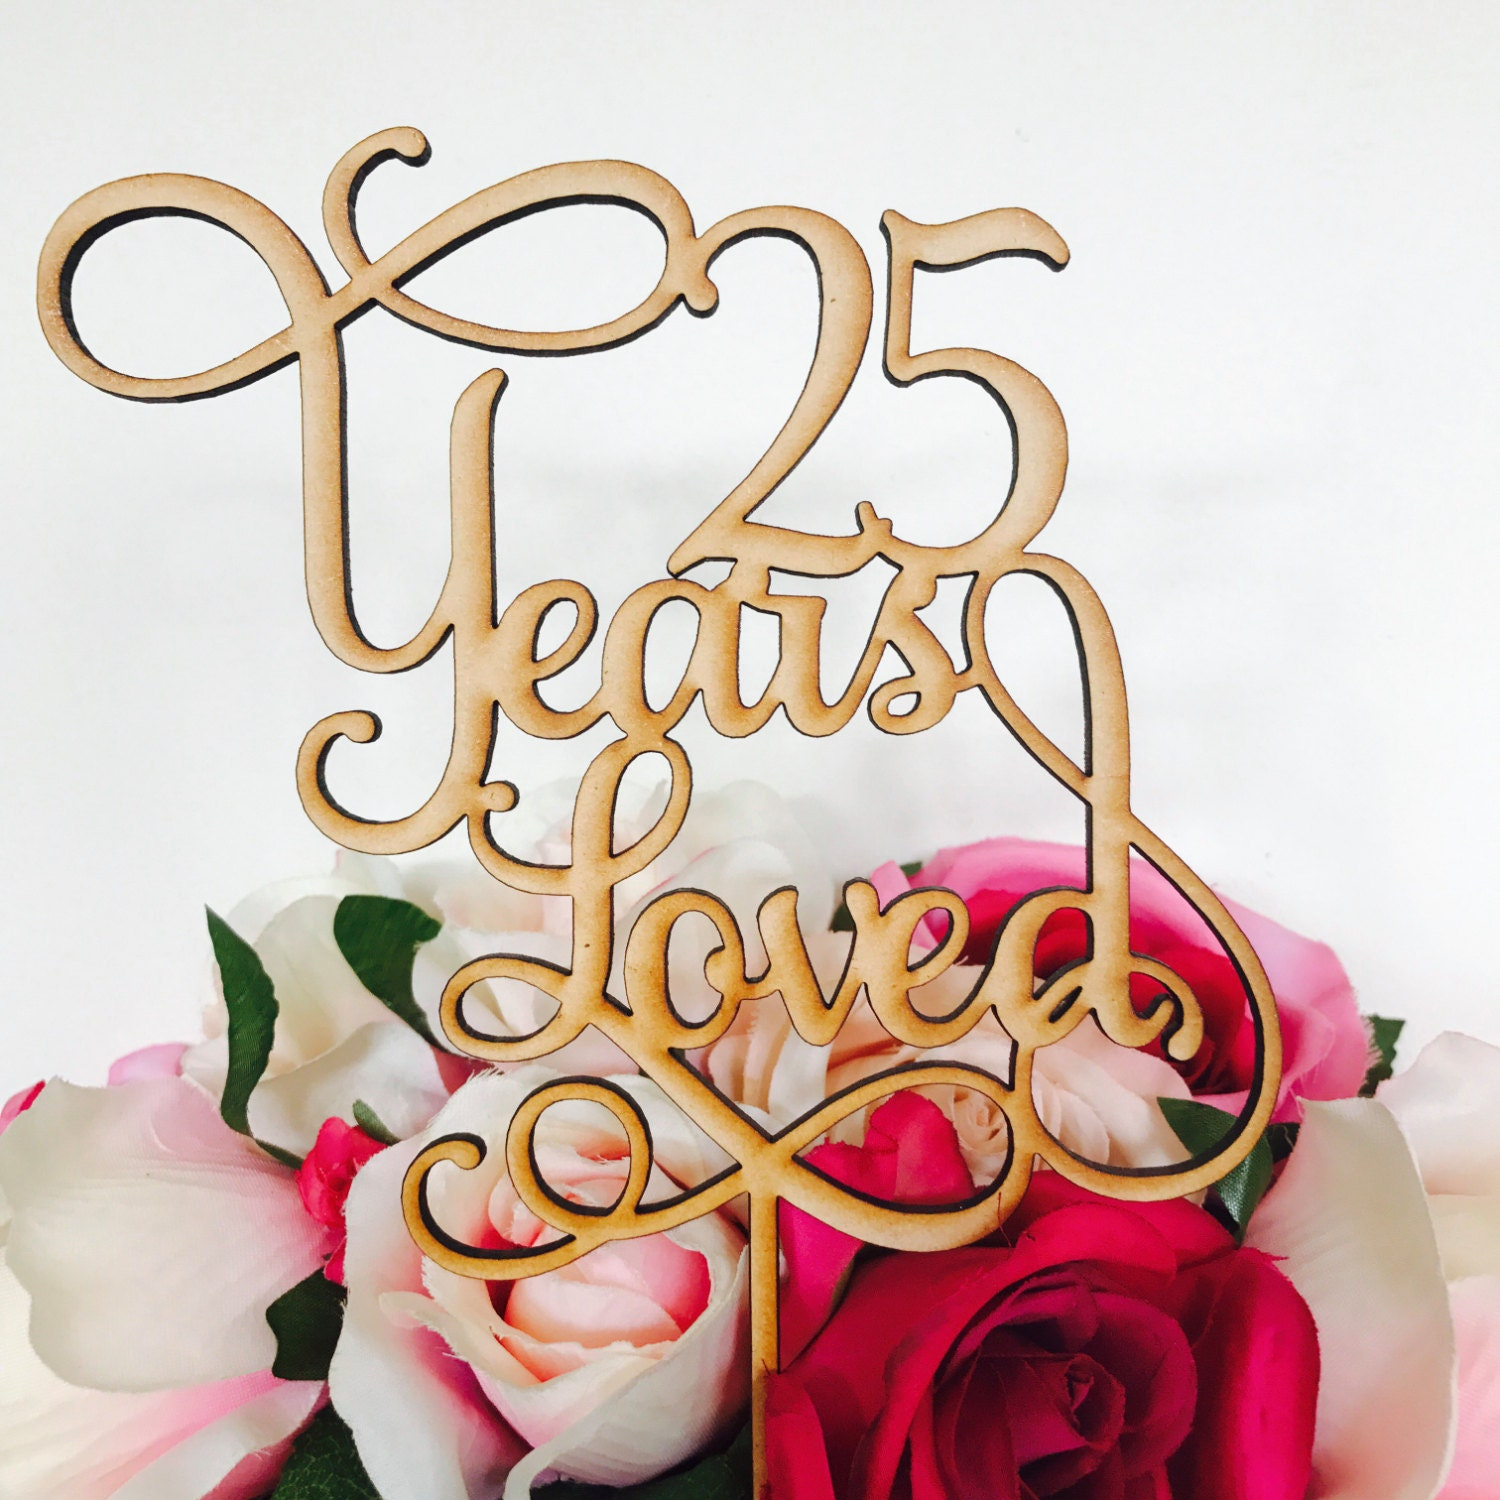 25 Years Loved Cake Topper Anniversary Cake Topper Cake Decoration